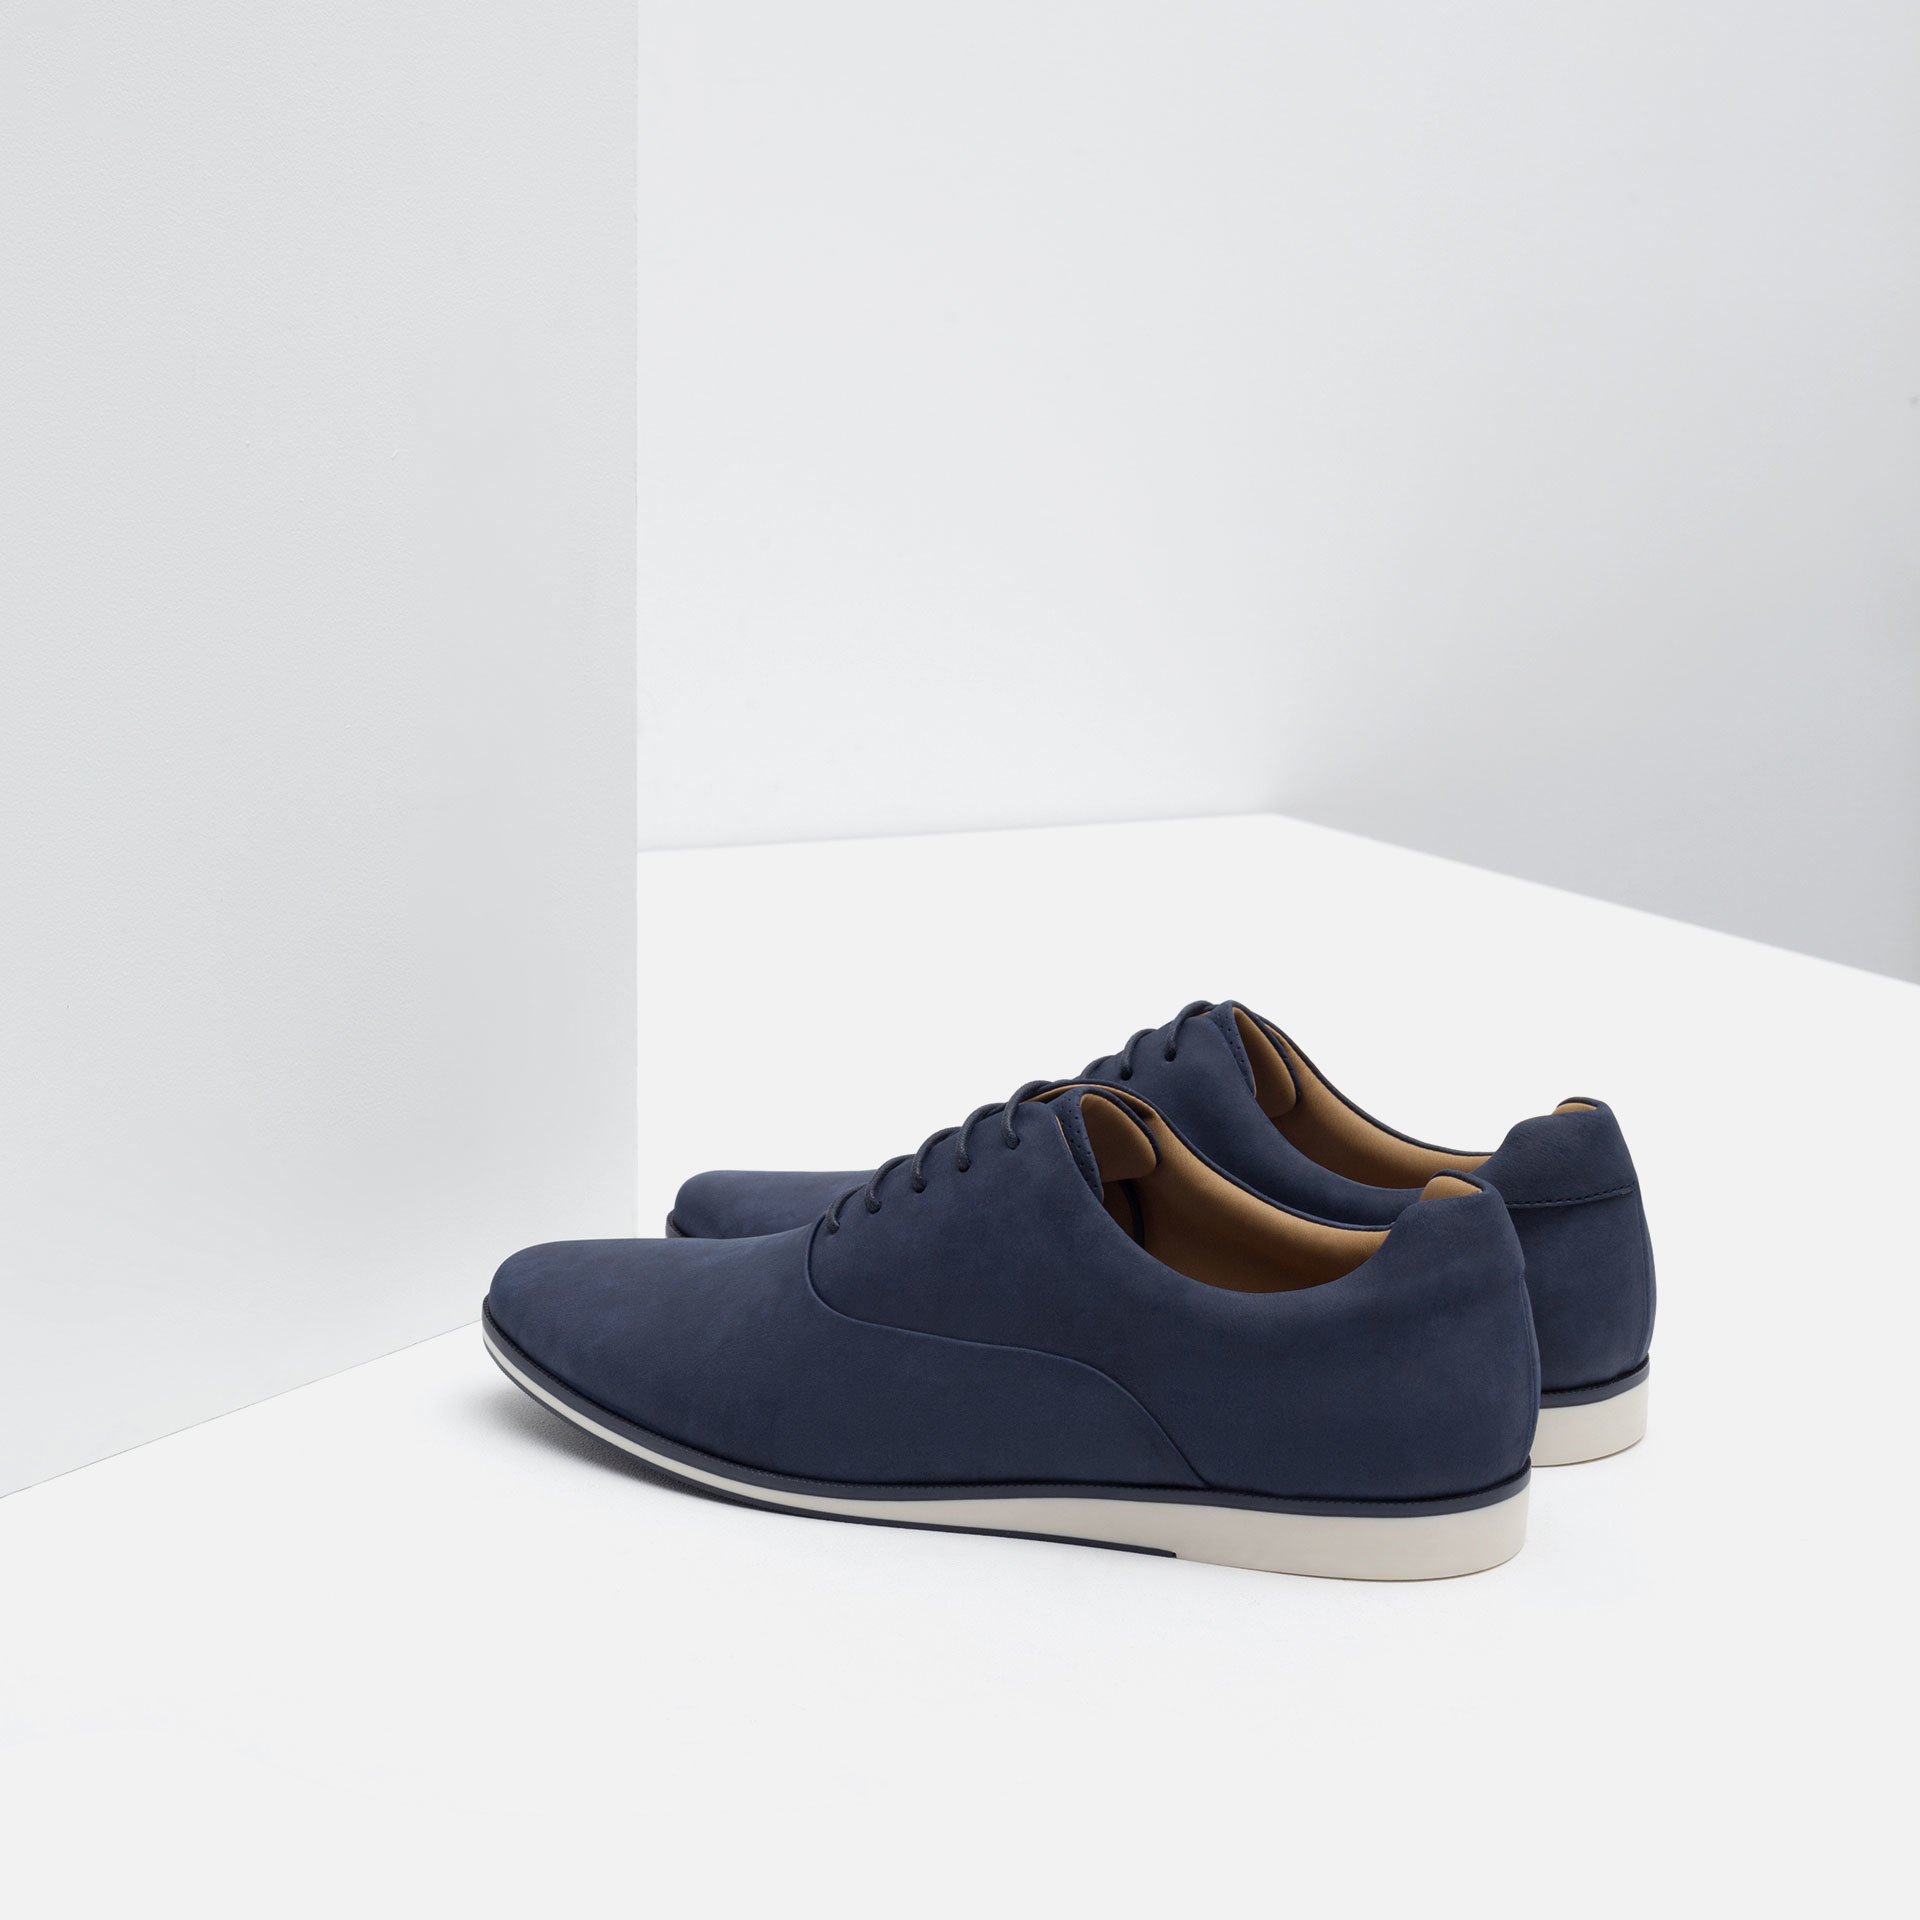 Zara Oxford Style Casual Shoes For Men | Lyst